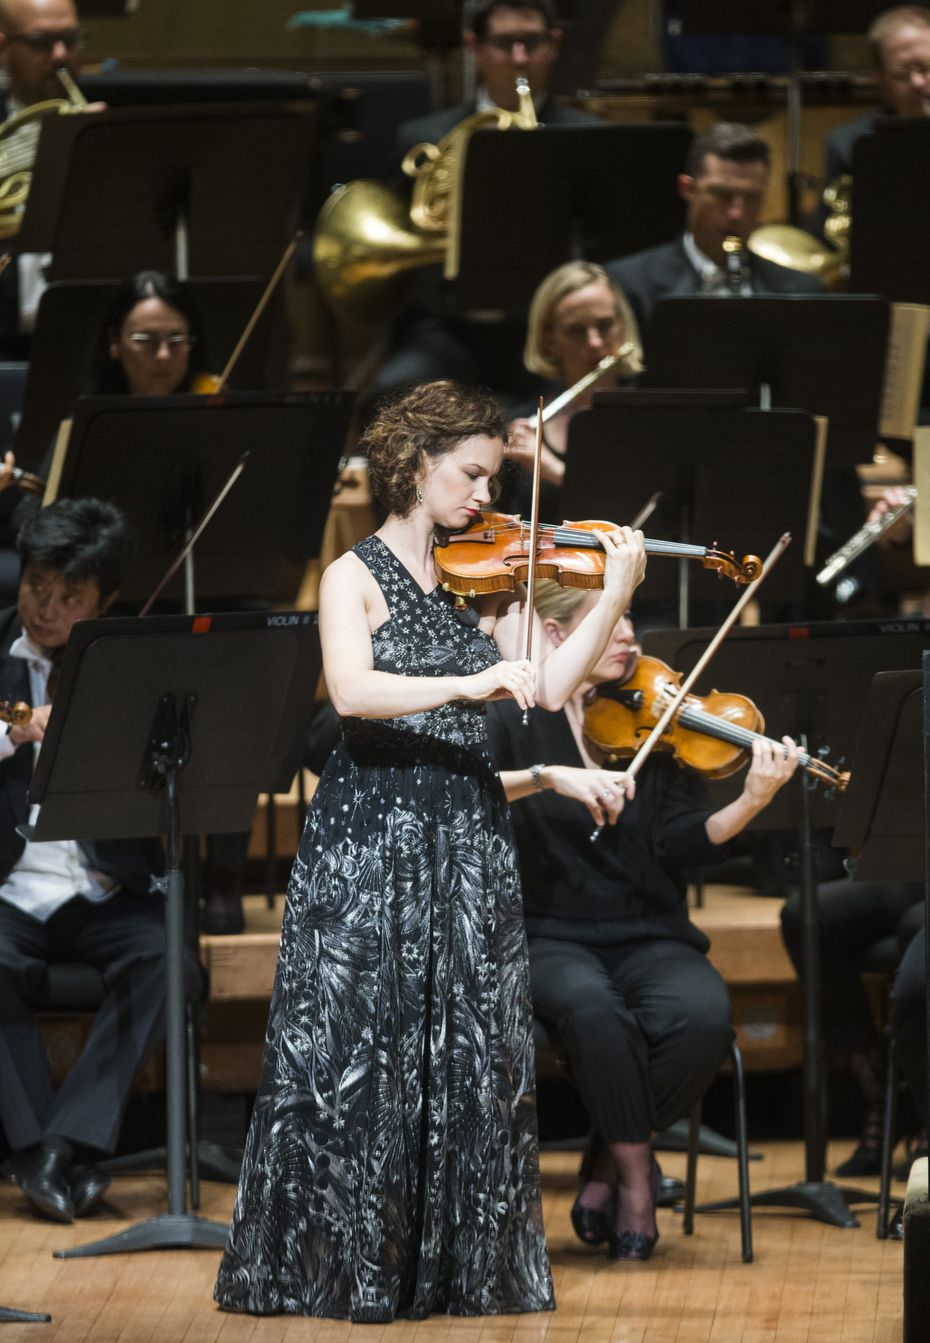 Violinist Hilary Hahn, who performed Dvorak's Concerto in A Minor for Violin and Orchestra with the Dallas Symphony Orchestra, on Sept. 21, 2017, in Dallas, will receive the Award of Excellence at the second Women in Classical Music Symposium.